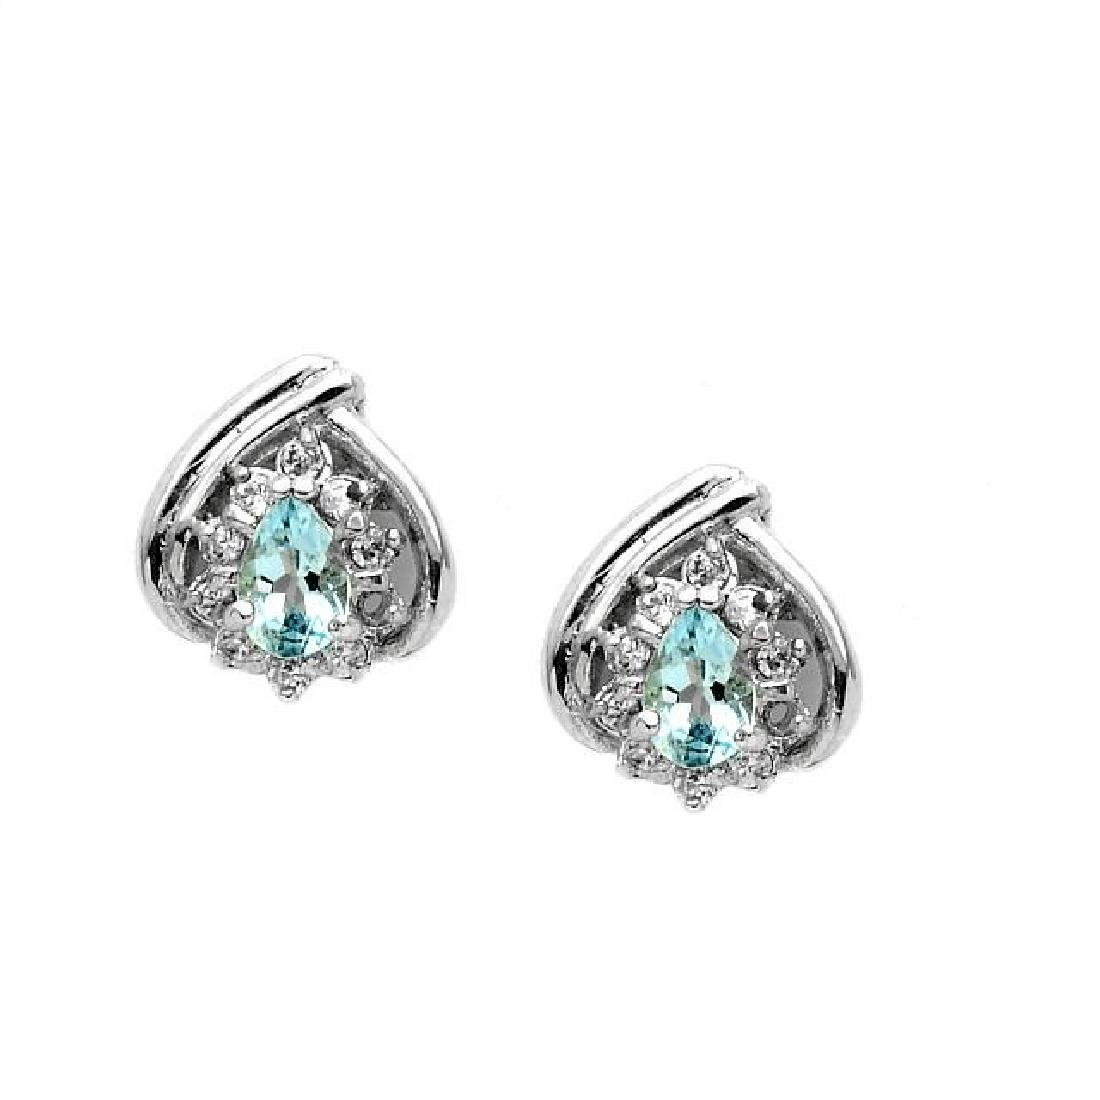 Sterling Silver Aquamarine & White Topaz Earrings